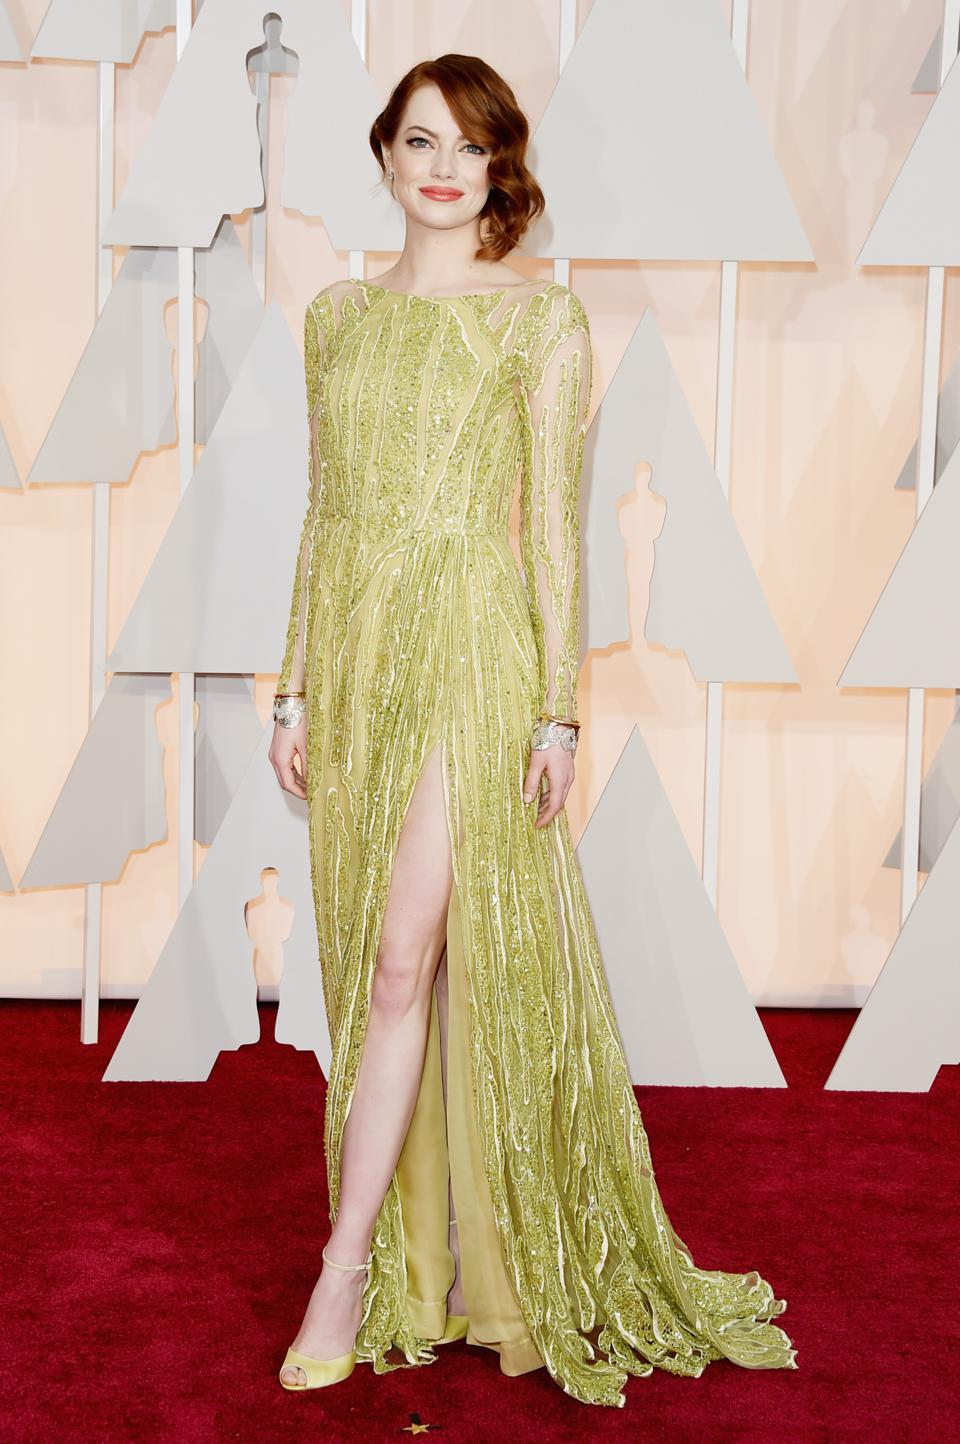 Elie Saab designed dress worn by Emma Stone